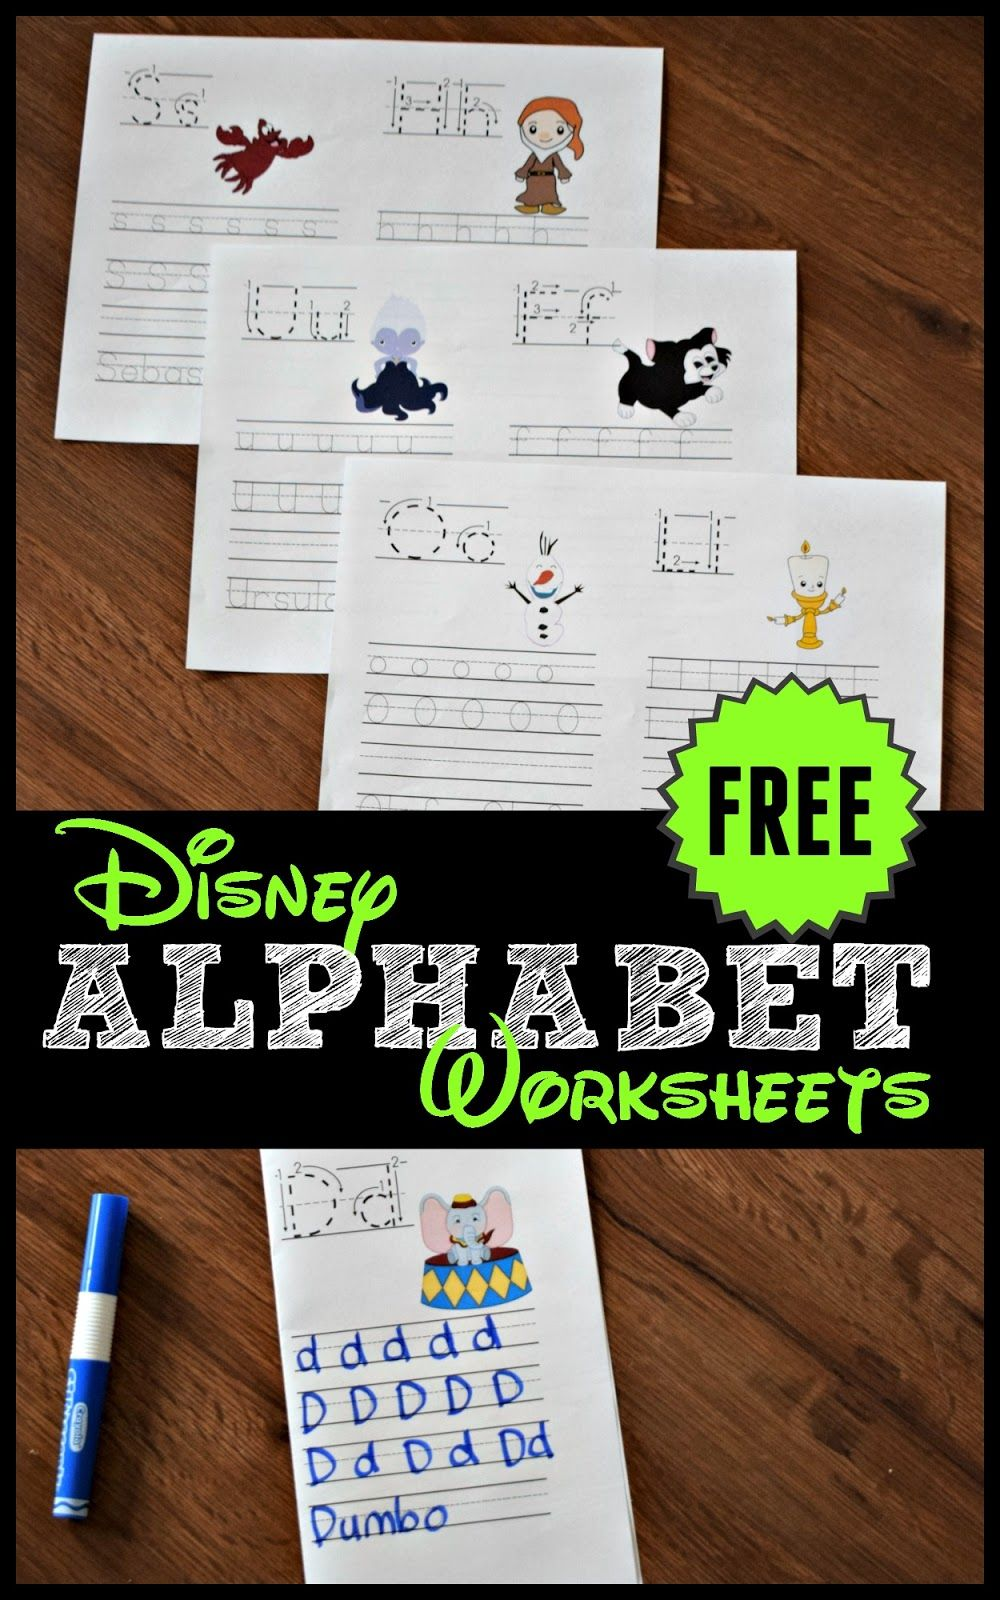 Free Disney Alphabet Coloring Pages Free Preschool Printables Disney Alphabet Printable Preschool Worksheets [ 1600 x 1000 Pixel ]